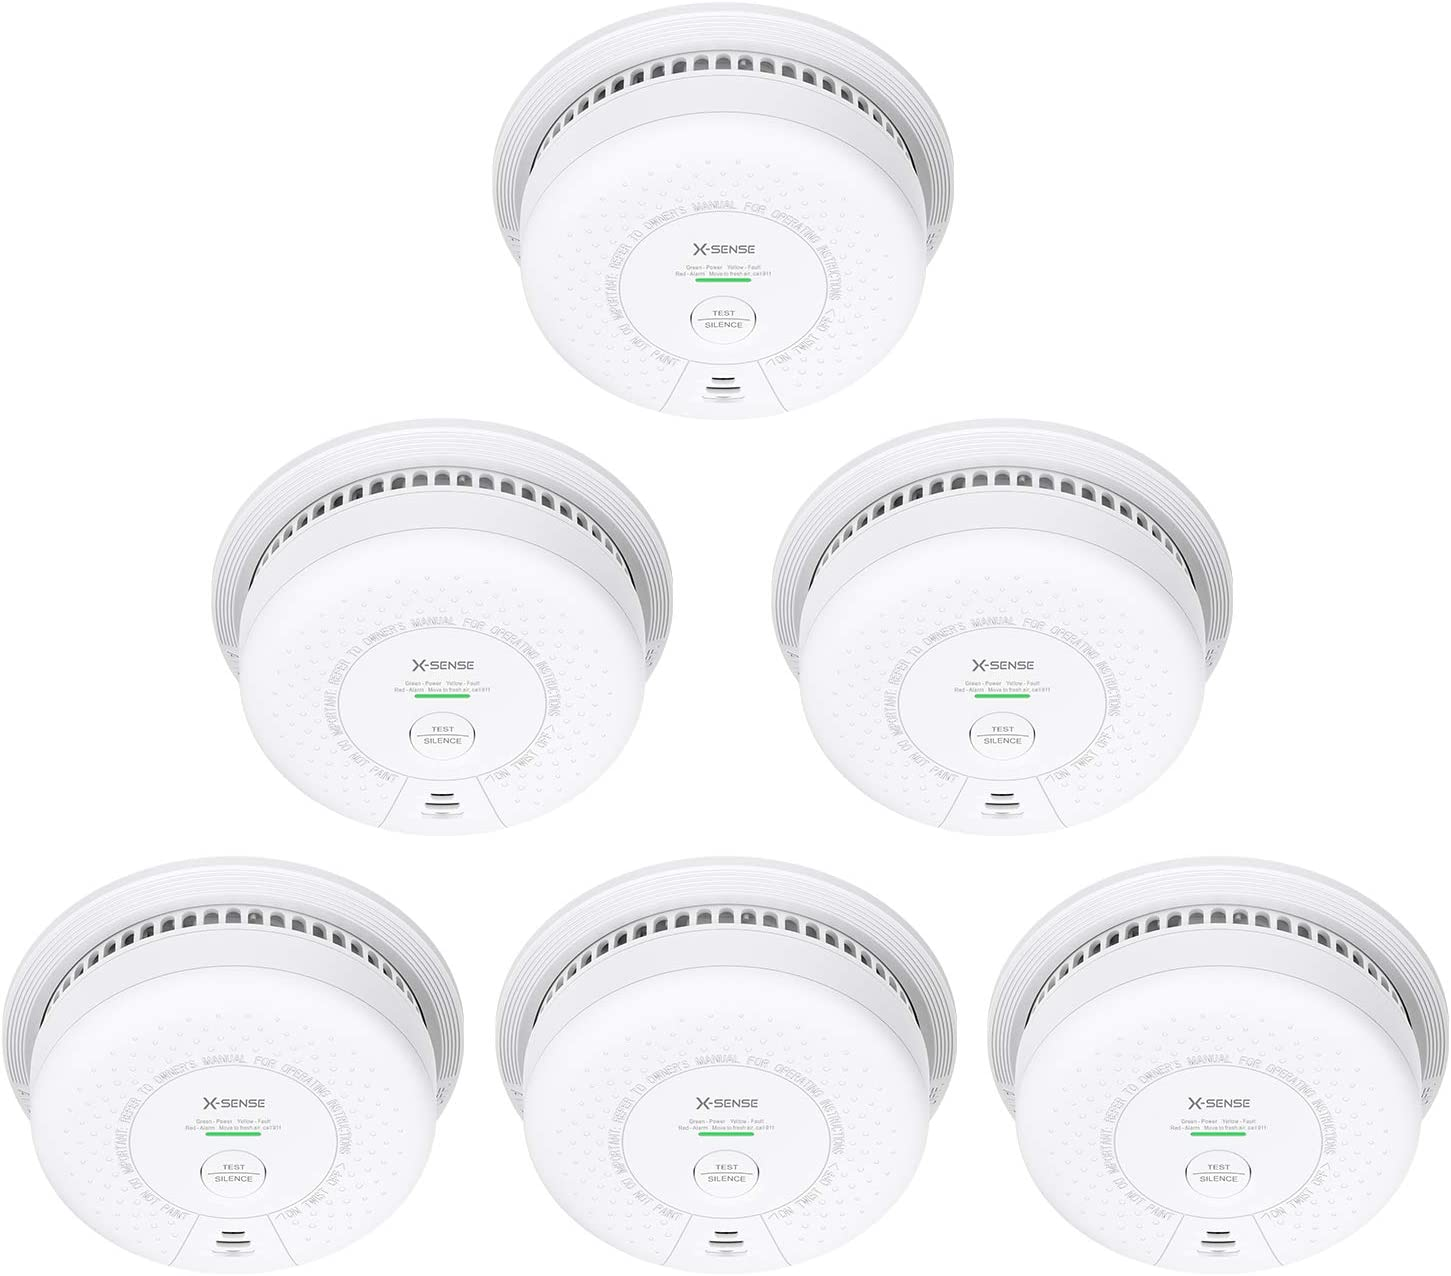 X-Sense Smoke Alarm (Not Hardwired), 10-Year Lithium Battery Fire Alarm with Photoelectric Sensor, Compliant with UL 217 Standard, Auto-Check & Silence Button, SD03 (6-Pack)